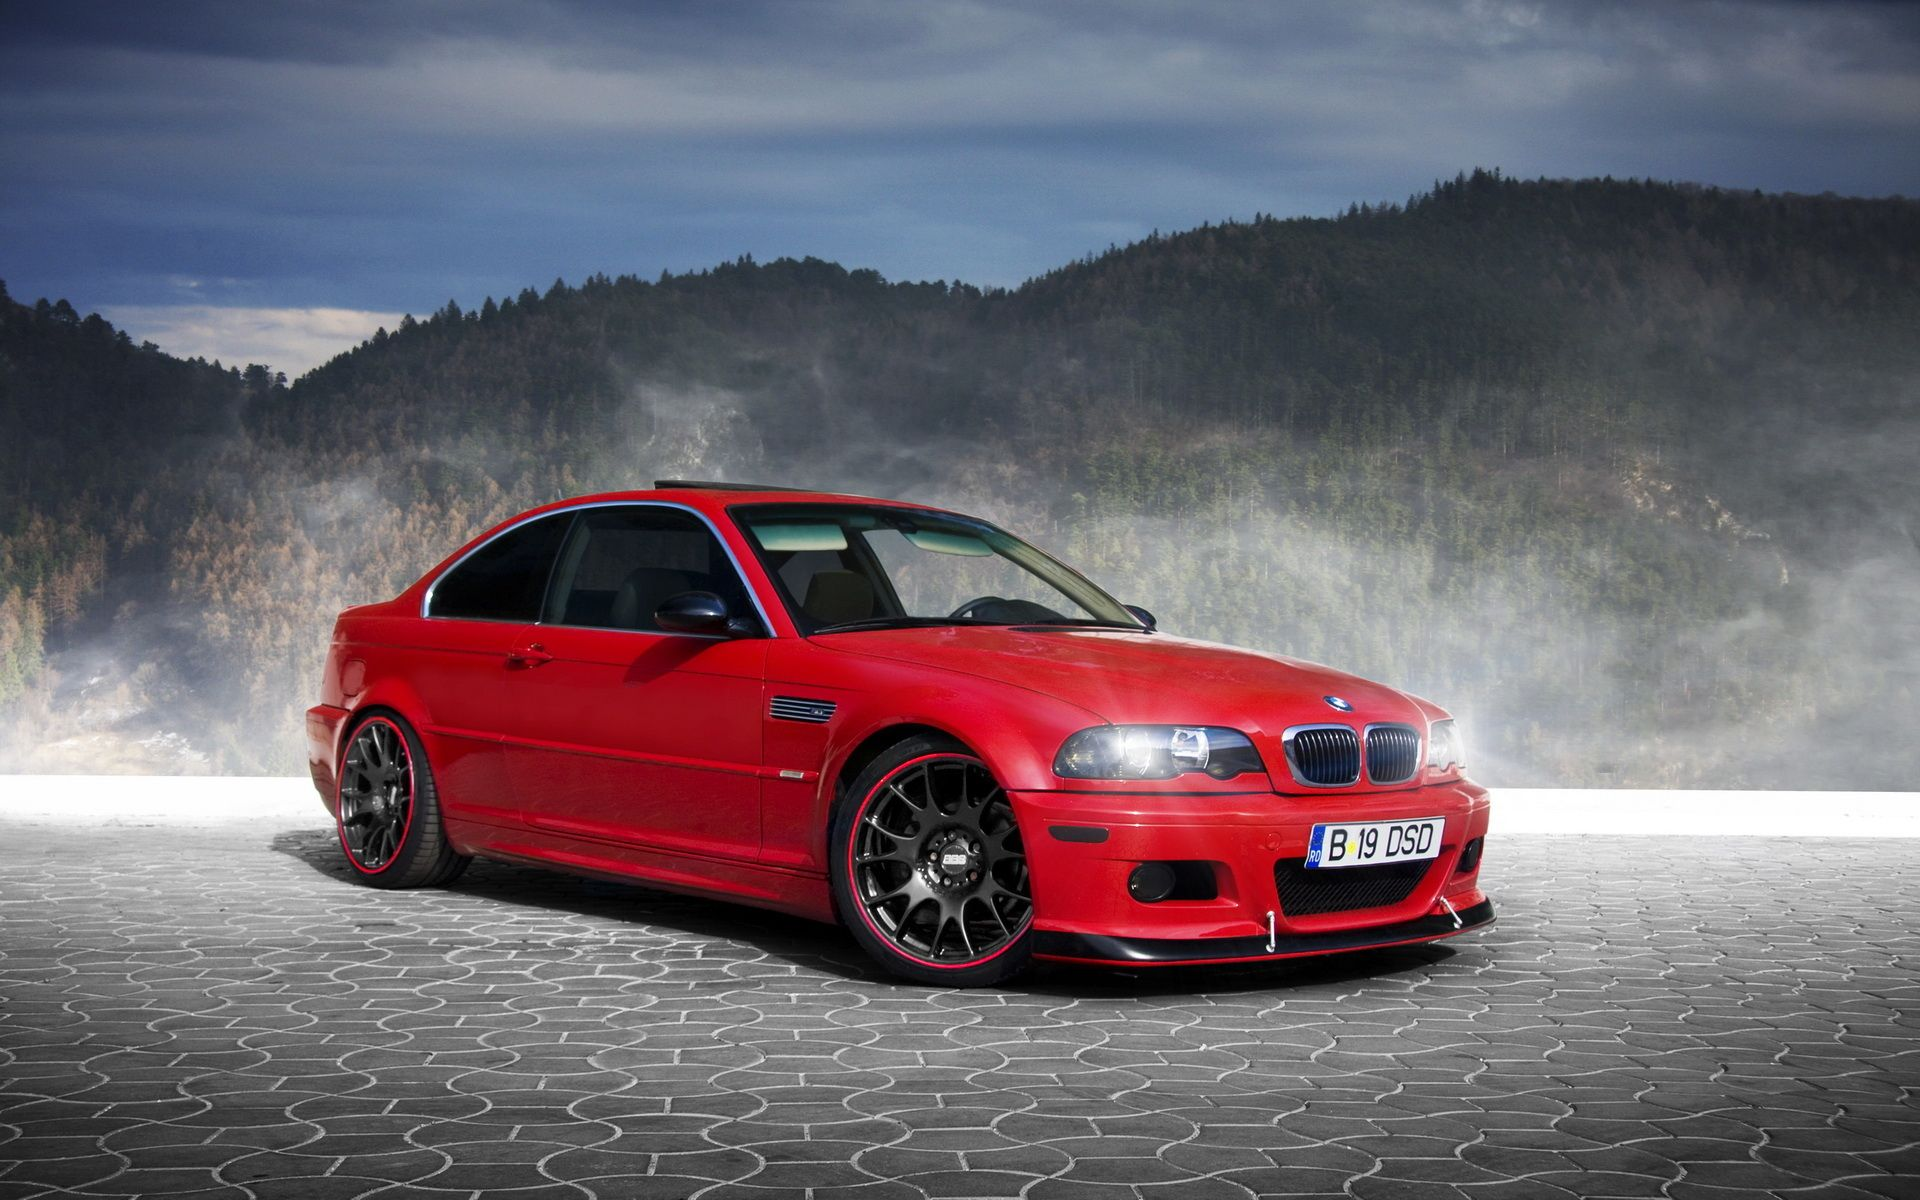 Bmw E46 Reviews History And Online Sales A Quick Overview The Bmw E46 Is The Fourth Generation Of Bmw 3 Series Compact Bmw E46 M3 Bmw E46 M3 Wallpapers Bmw